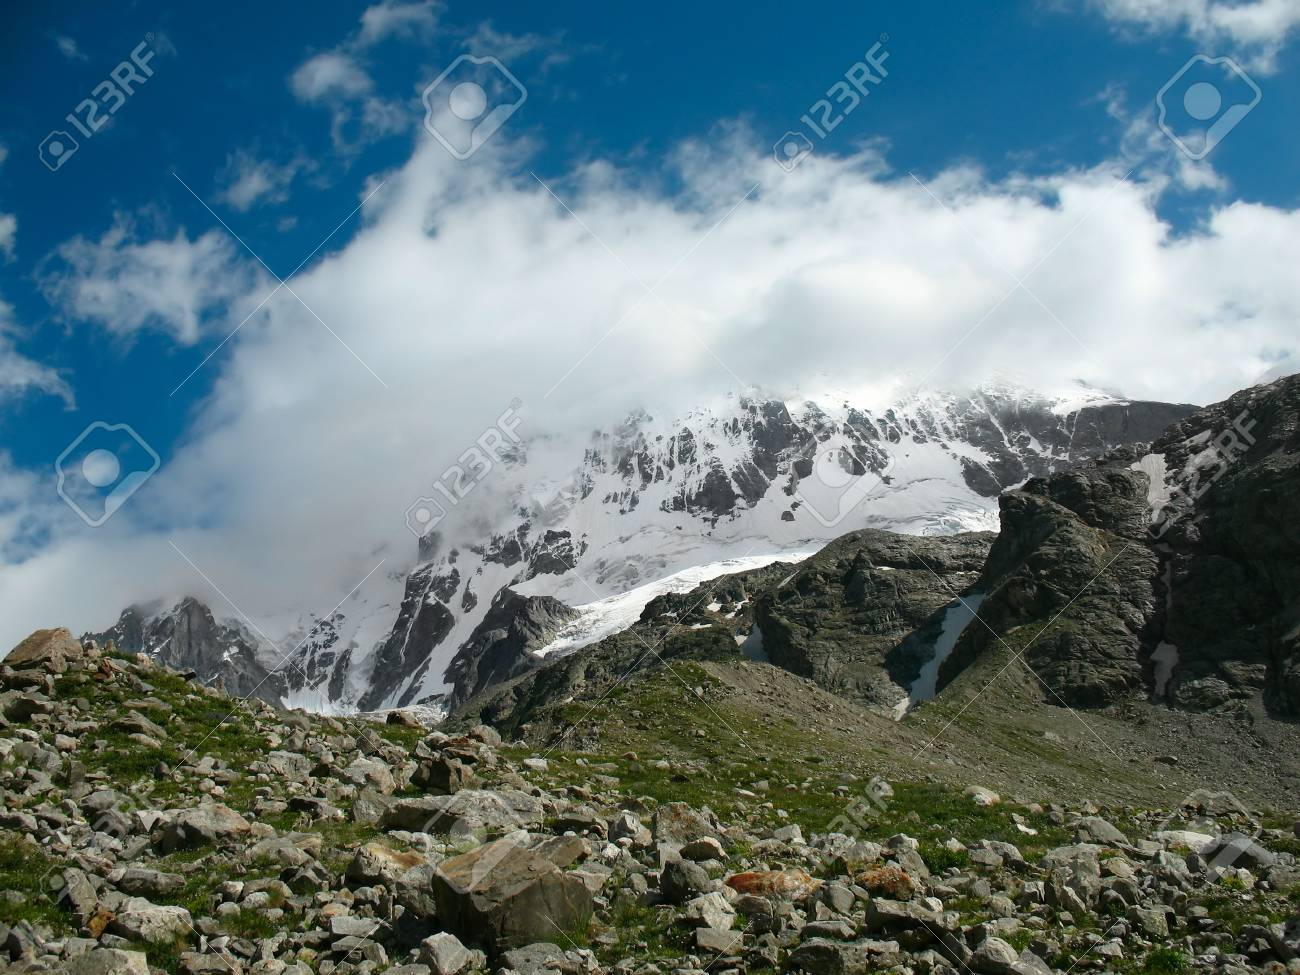 landscape with high mountains, snowy peaks and blue sky Stock Photo - 2024747